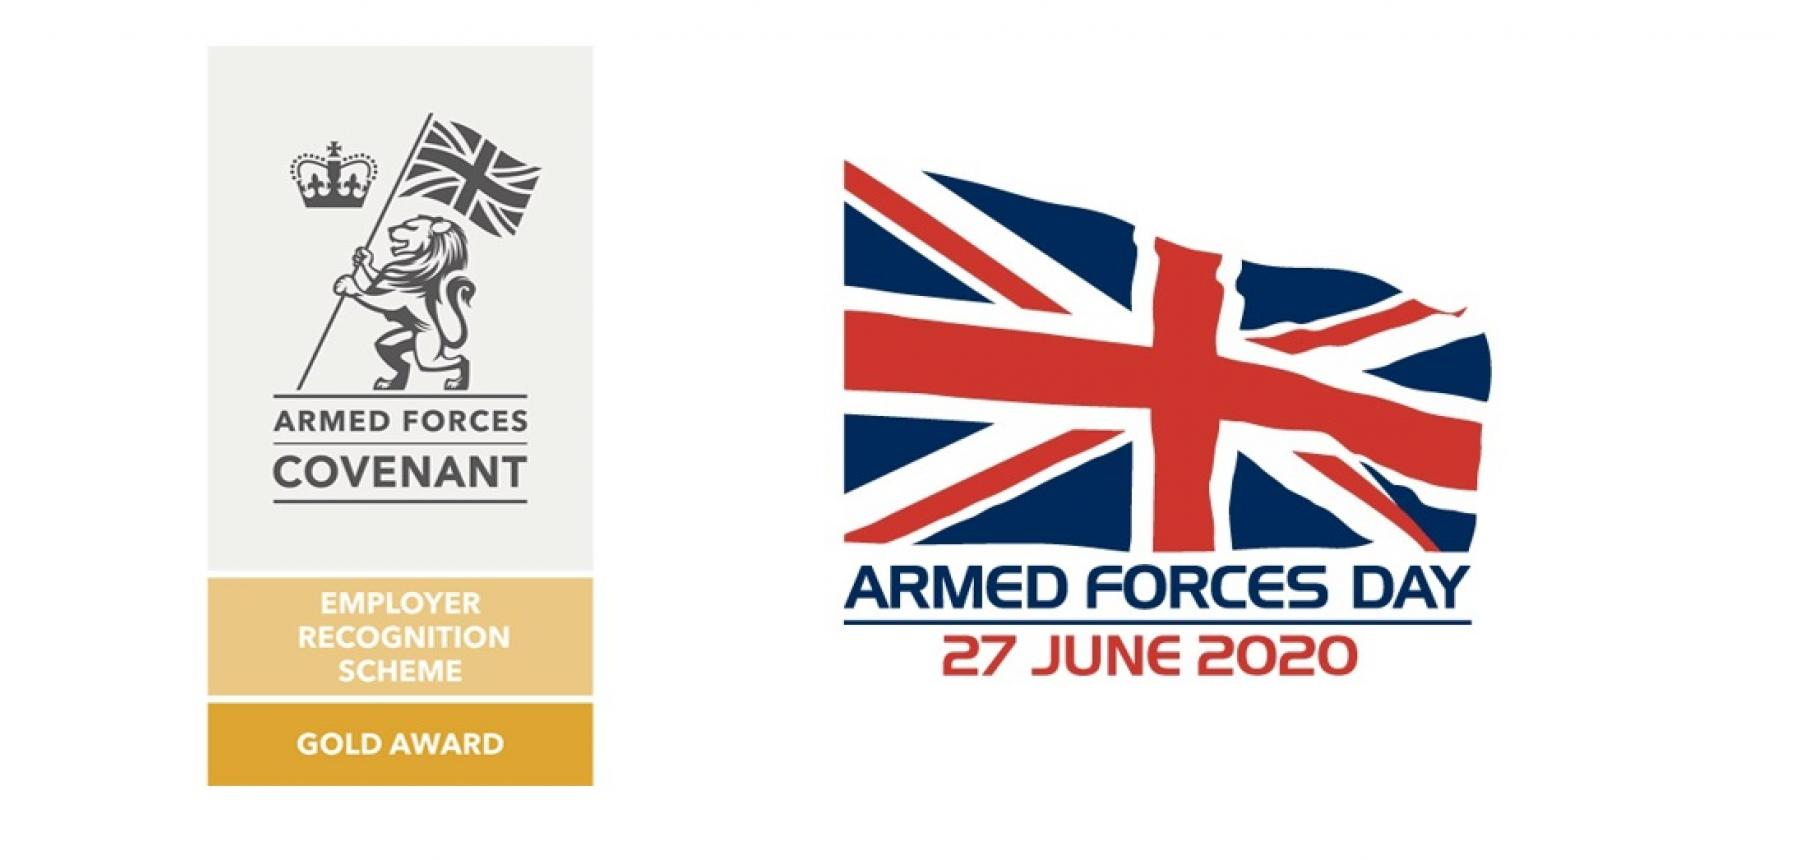 ERS Gold Award and Armed Forces Day logo